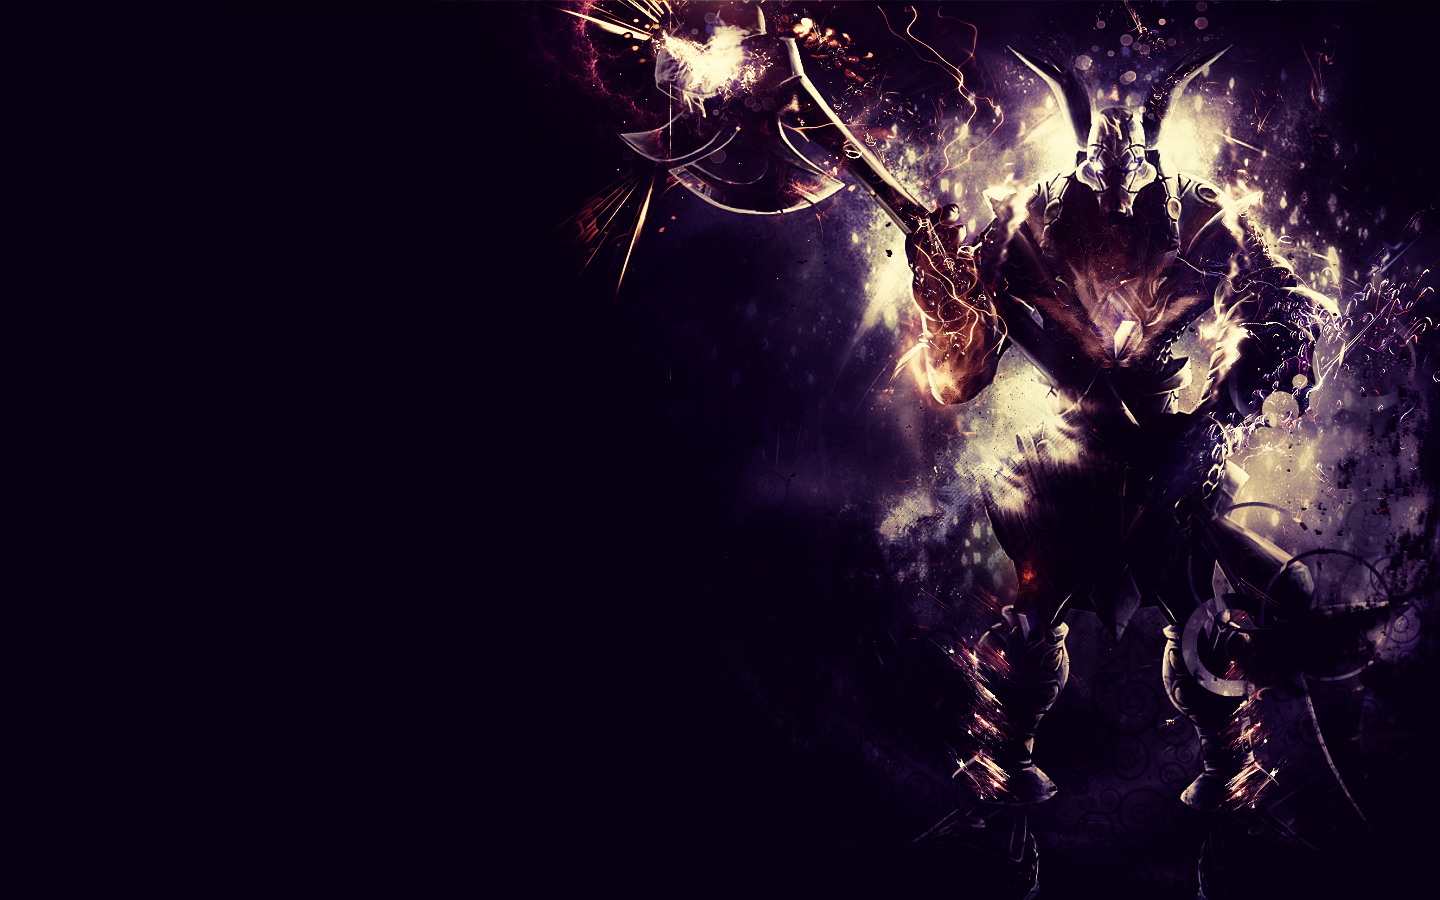 Nasus League of Legends Wallpaper